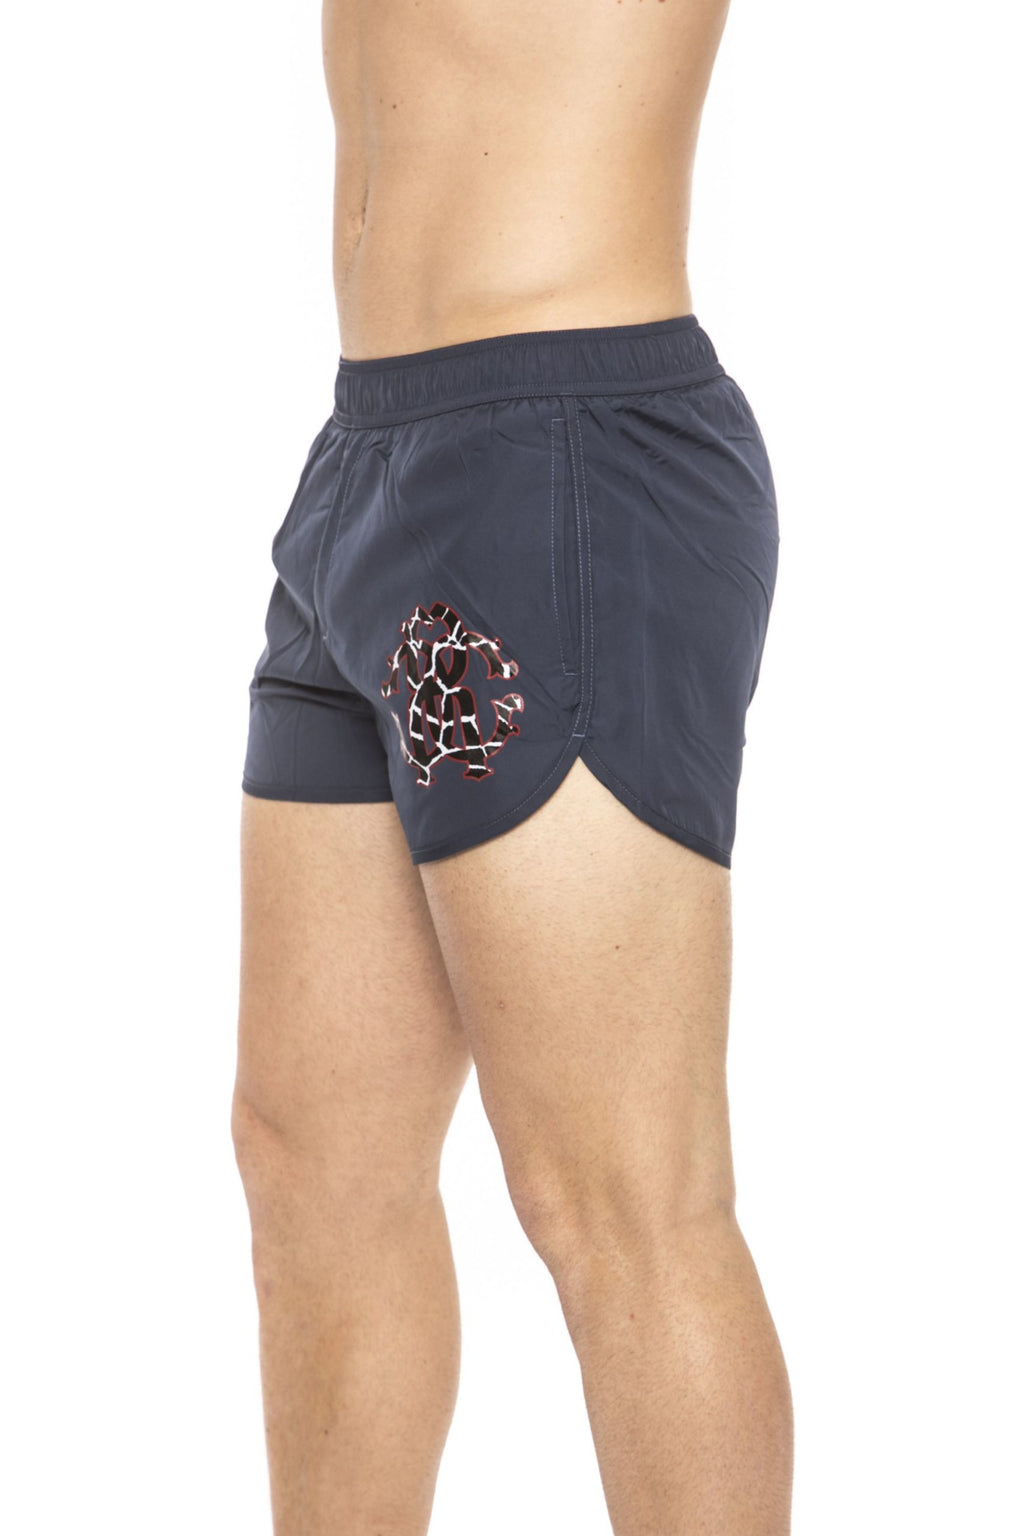 Blue Short Beachwear Boxer With Pockets. Front Logo Print. Internal Net. Back Pocket.